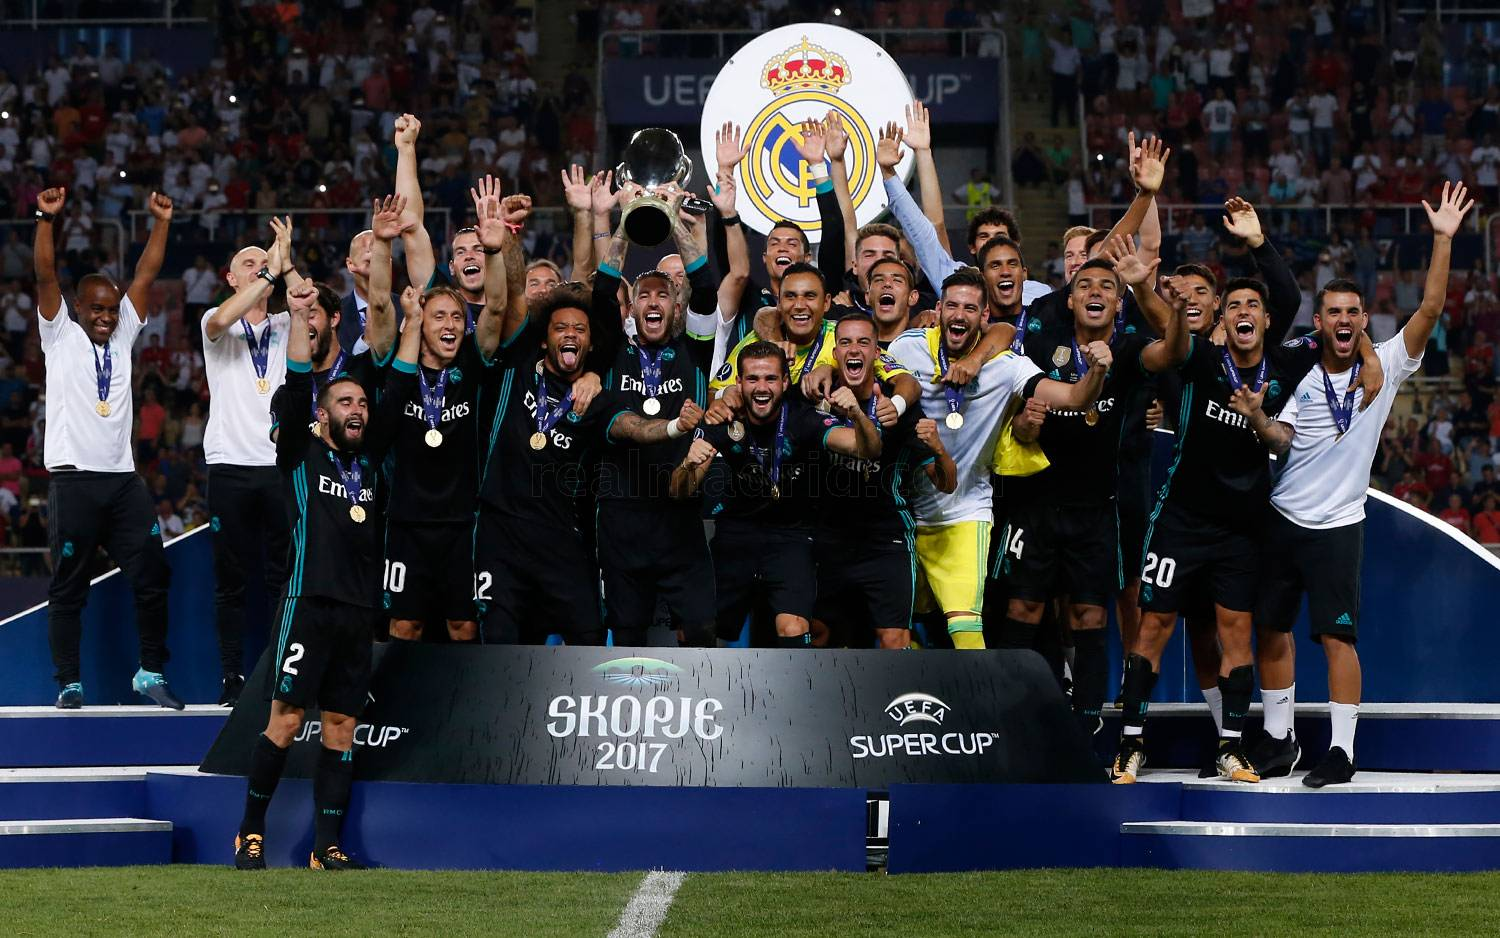 Real Madrid - Con la Supercopa de Europa en Macedonia - 10-02-2019